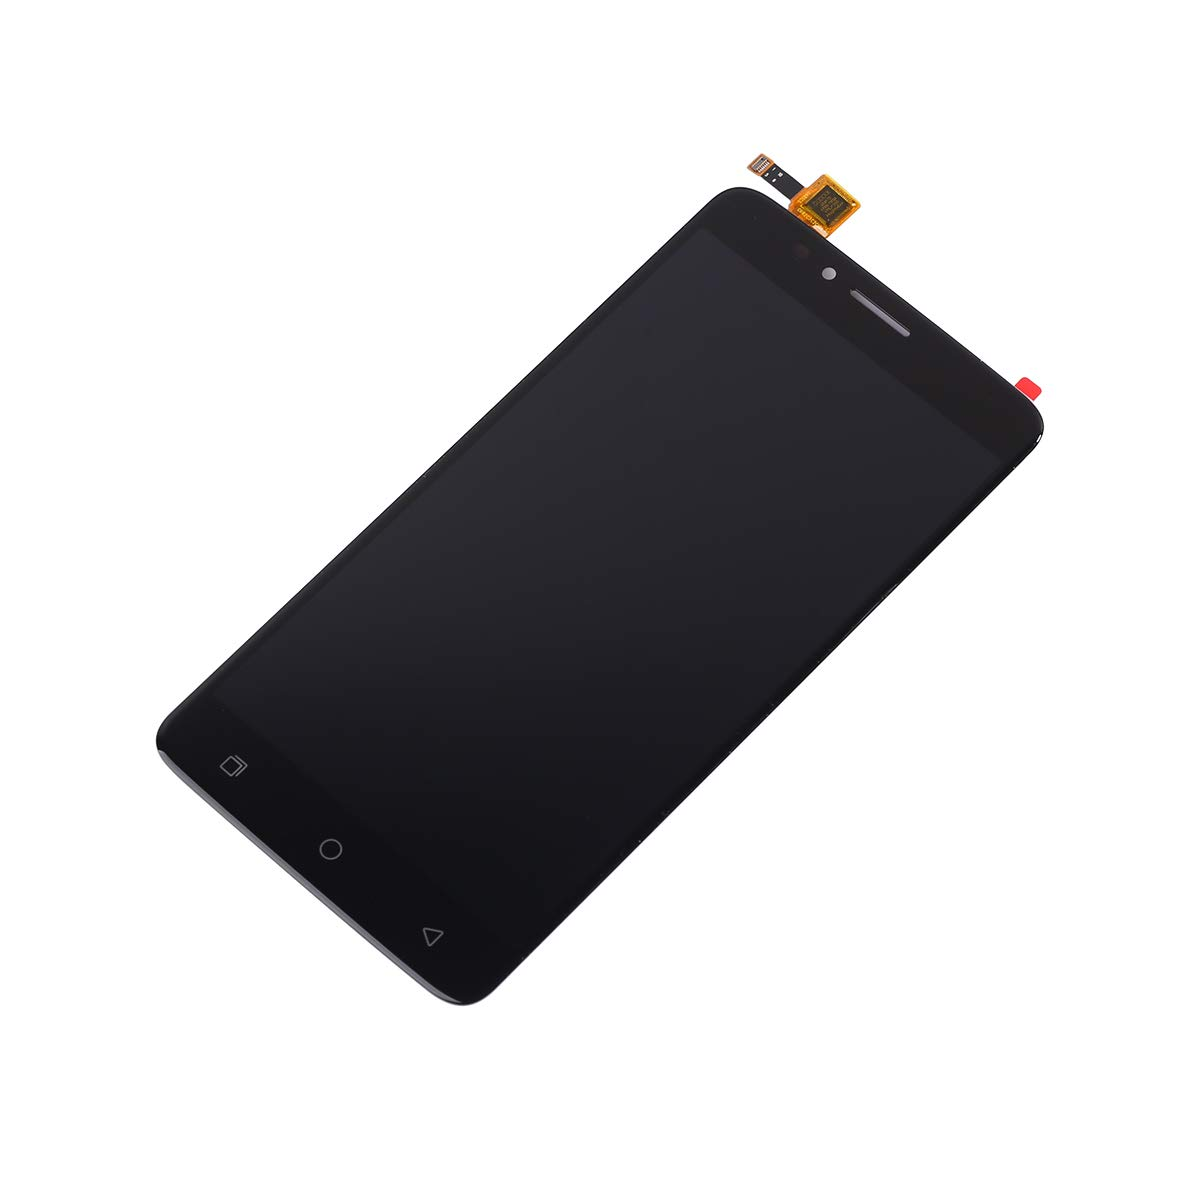 Assembly for Coolpad T-Mobile Revvl Plus (C3701A) LTE 6.0 inch LCD Display Touch Screen Digitizer Glass Panel Complete Full Replacement Black